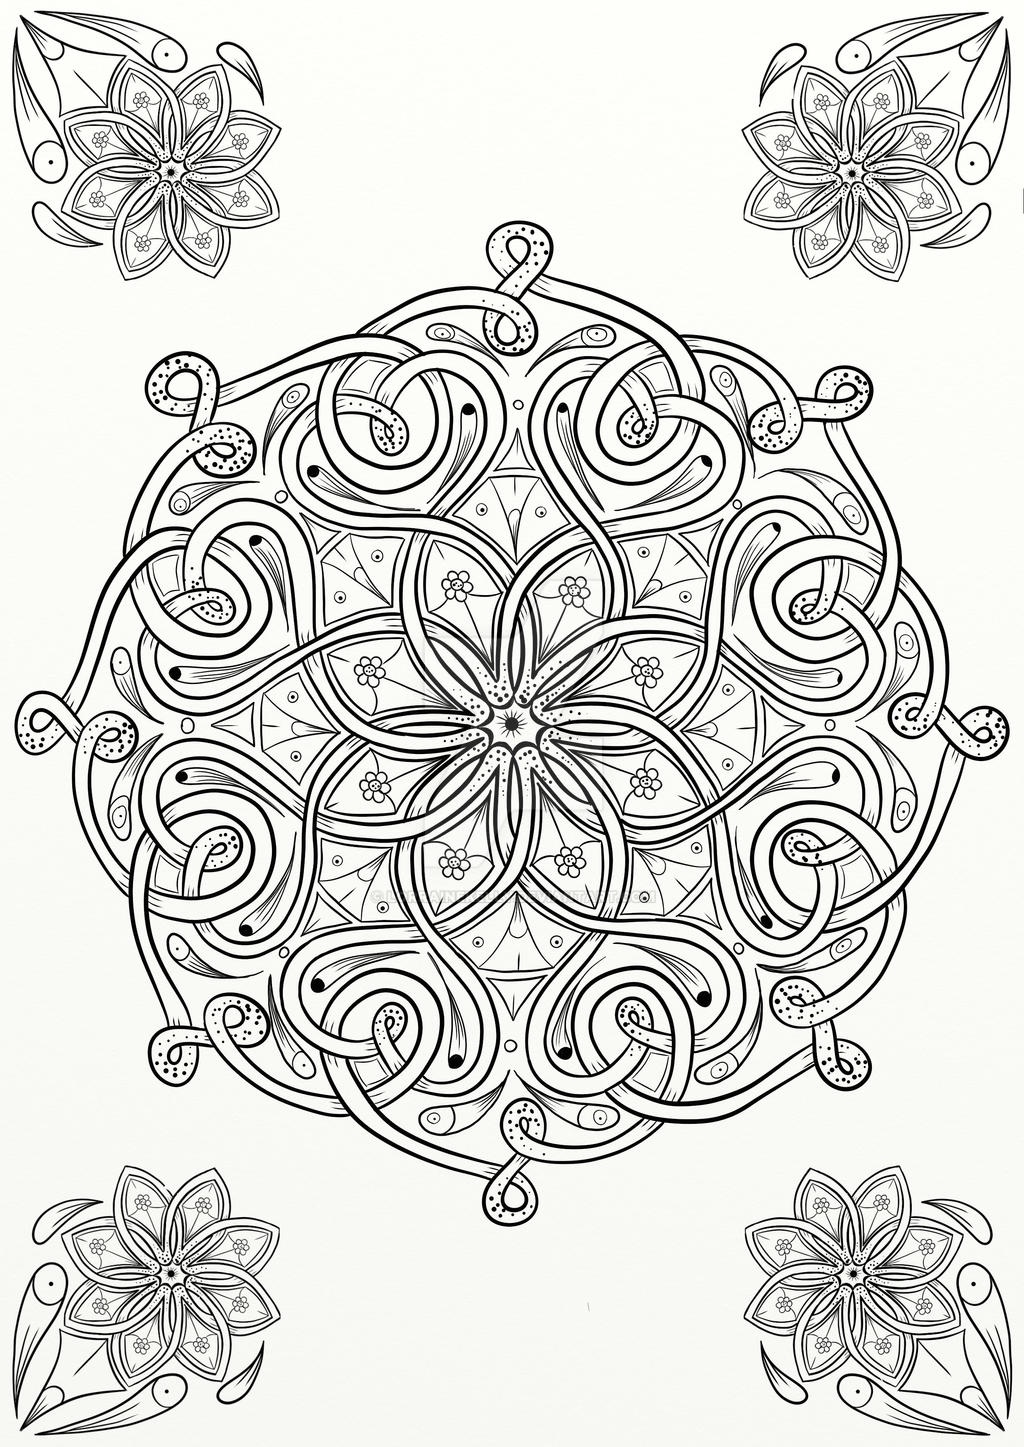 Celtic Knot Flower Design Coloring Page by LorraineKelly ...